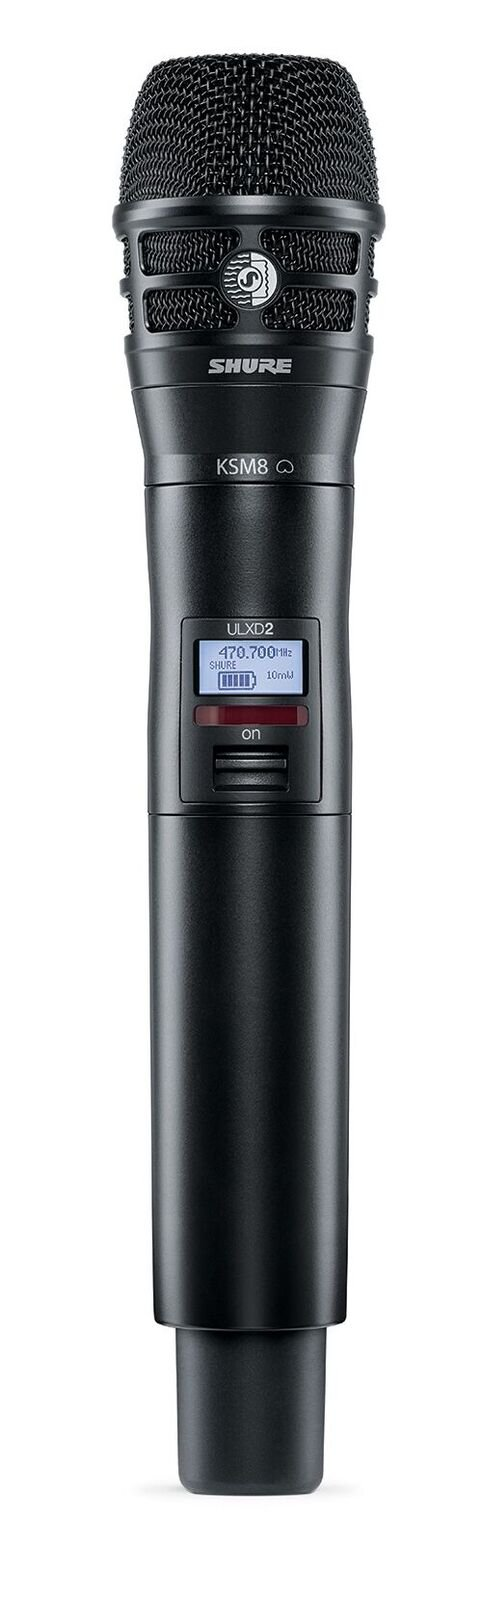 Handheld Transmitter in Black with KSM8 Capsule for ULX-D Wireless Systems, G50 Band (470-534 MHz)